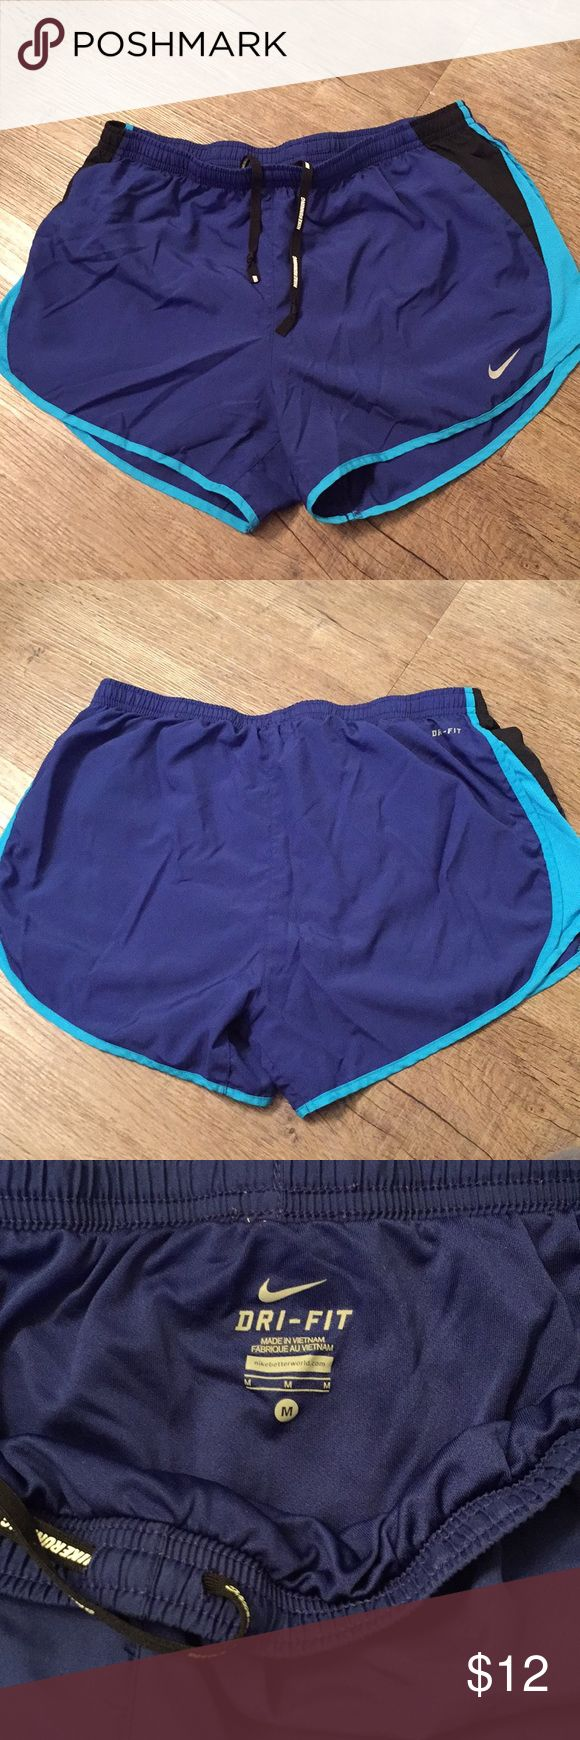 Nike Dri-Fit Running Shorts Super comfy athletic shorts with elastic waistband and built-in briefs. Nike Shorts